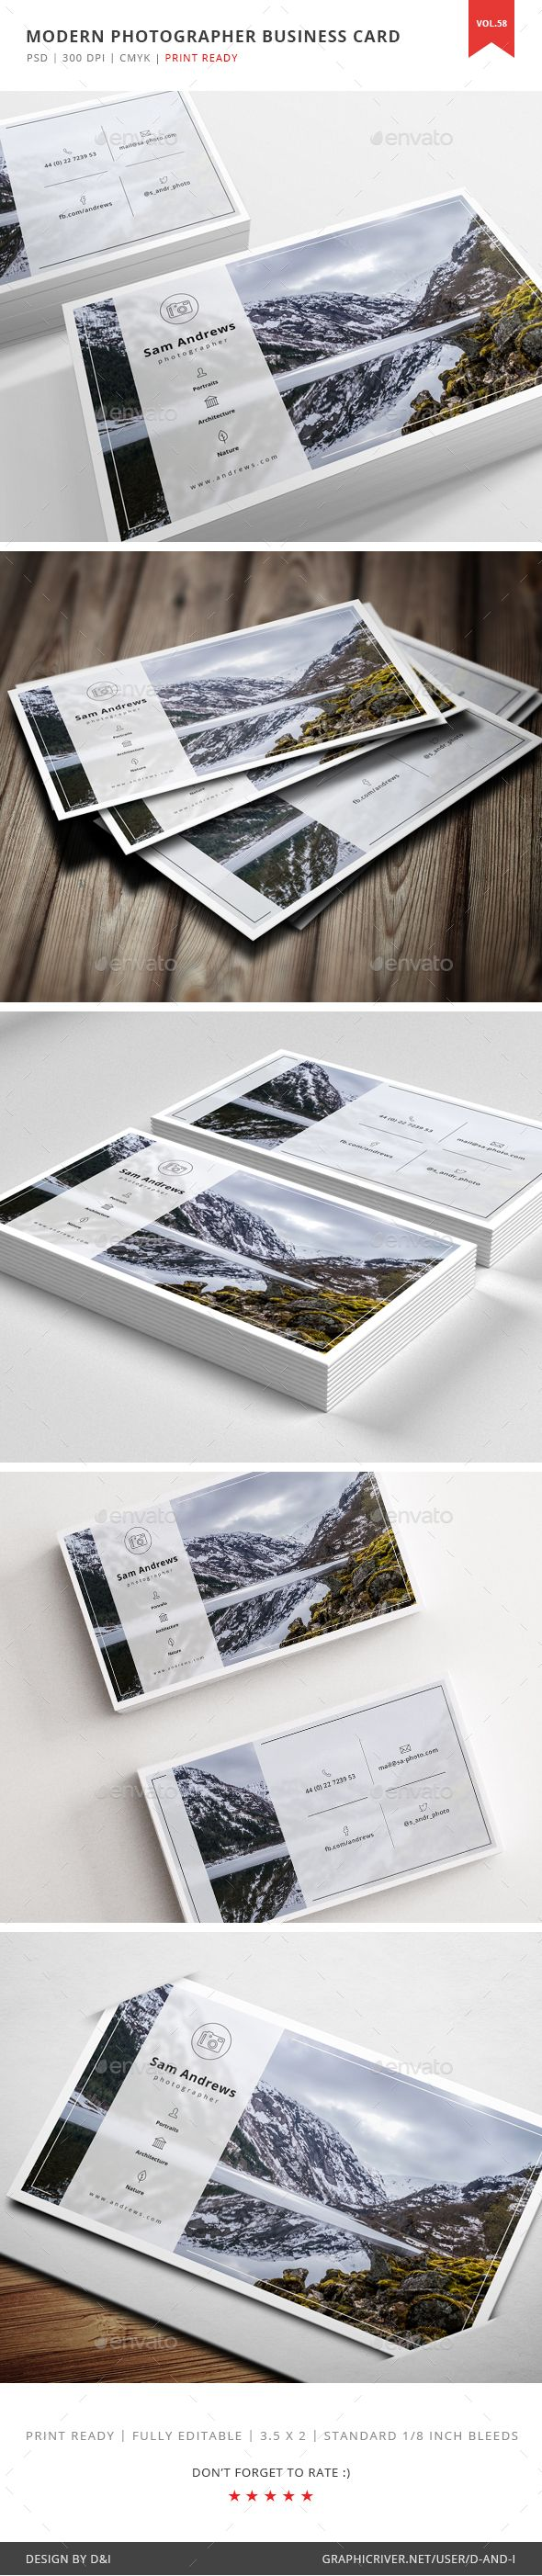 Best 25+ Standard business card size ideas on Pinterest | Paper ...